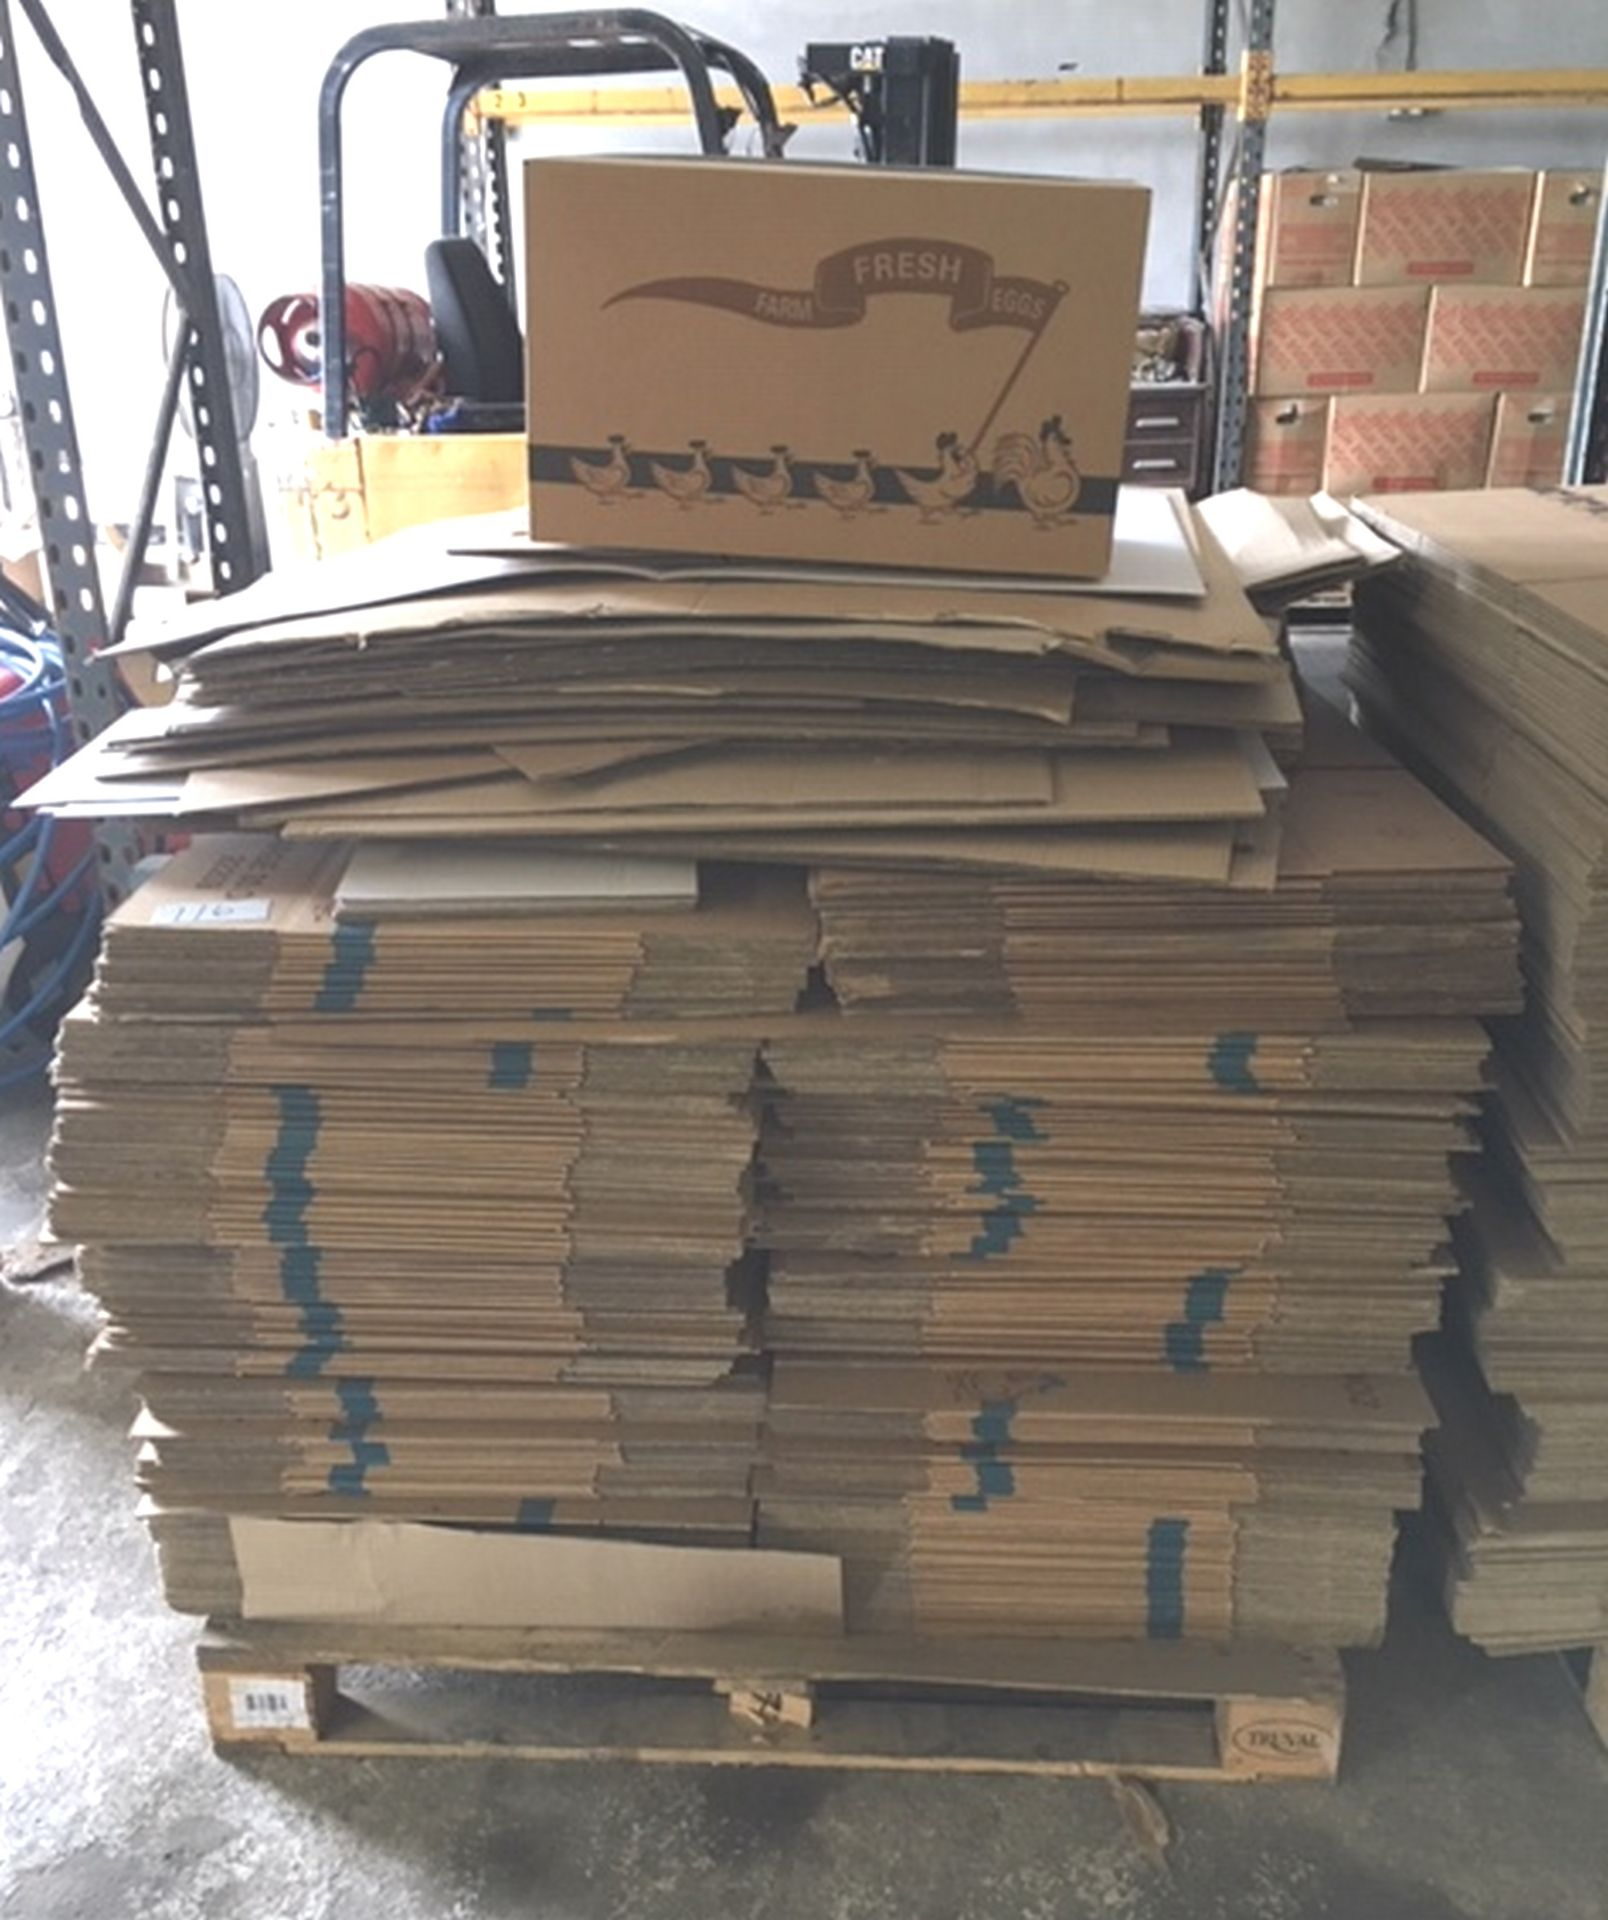 "Lot 116 - Pallet 2/3 full of Carboard Boxes approx 23 1/2"" x 14"" x 11 1/2""."